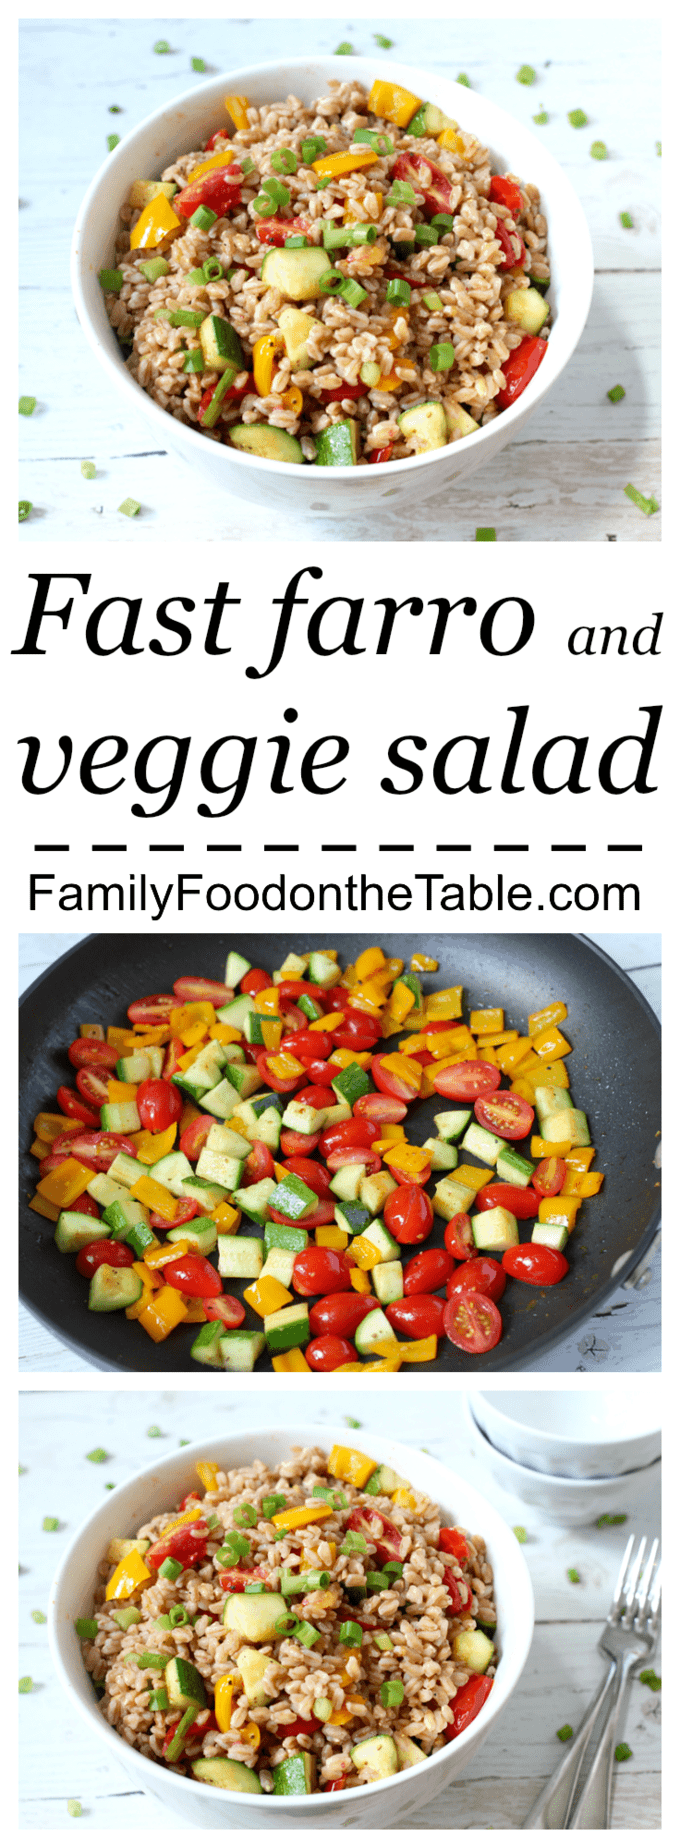 Fast farro and veggie salad - a quick, colorful and healthy side dish! | FamilyFoodontheTable.com